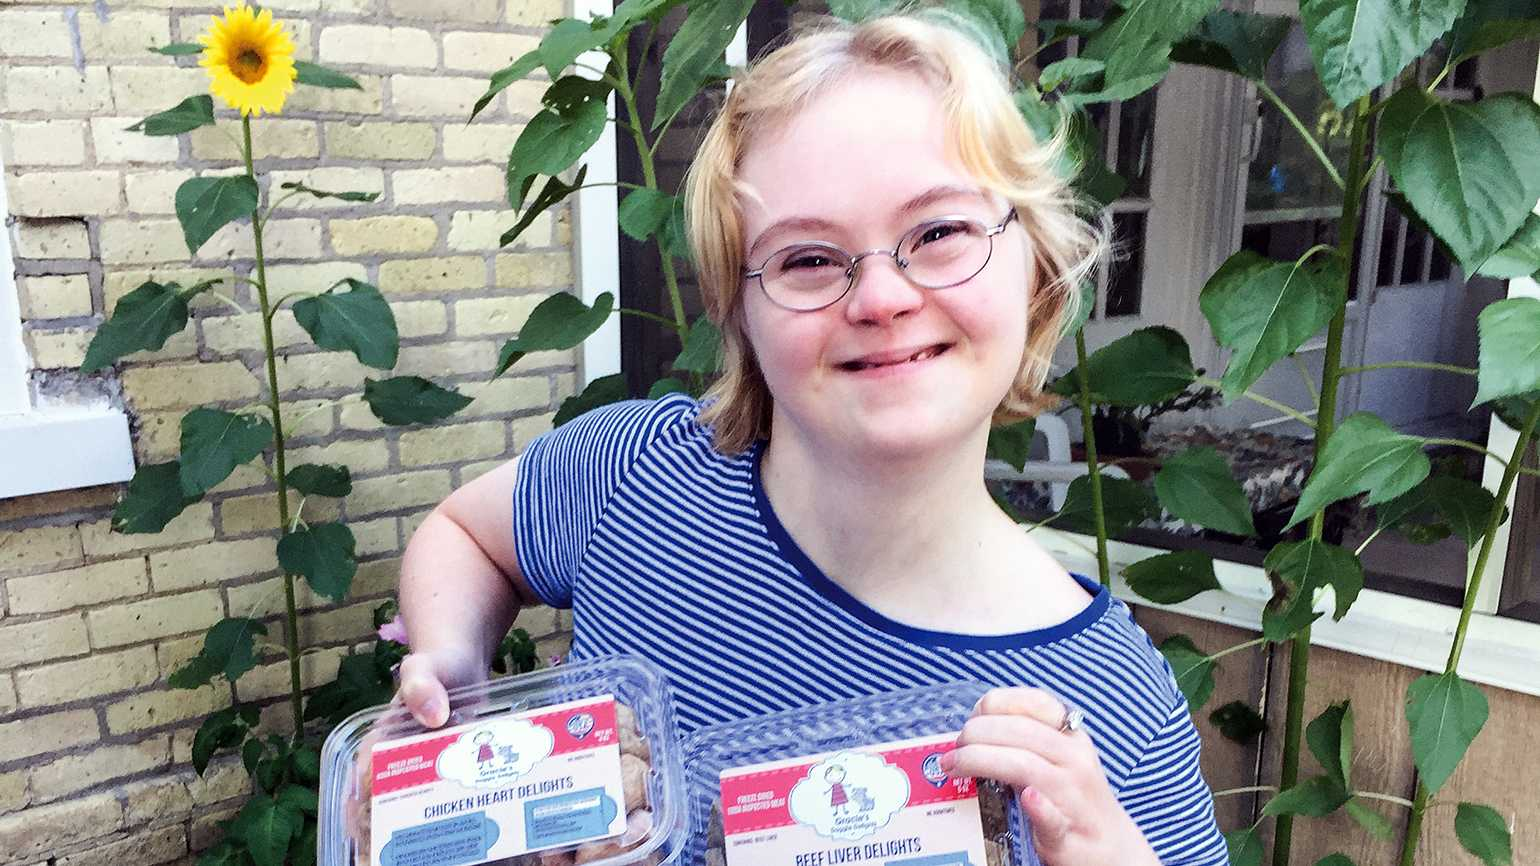 Gracie Jagler poses with some of her Doggie Delights